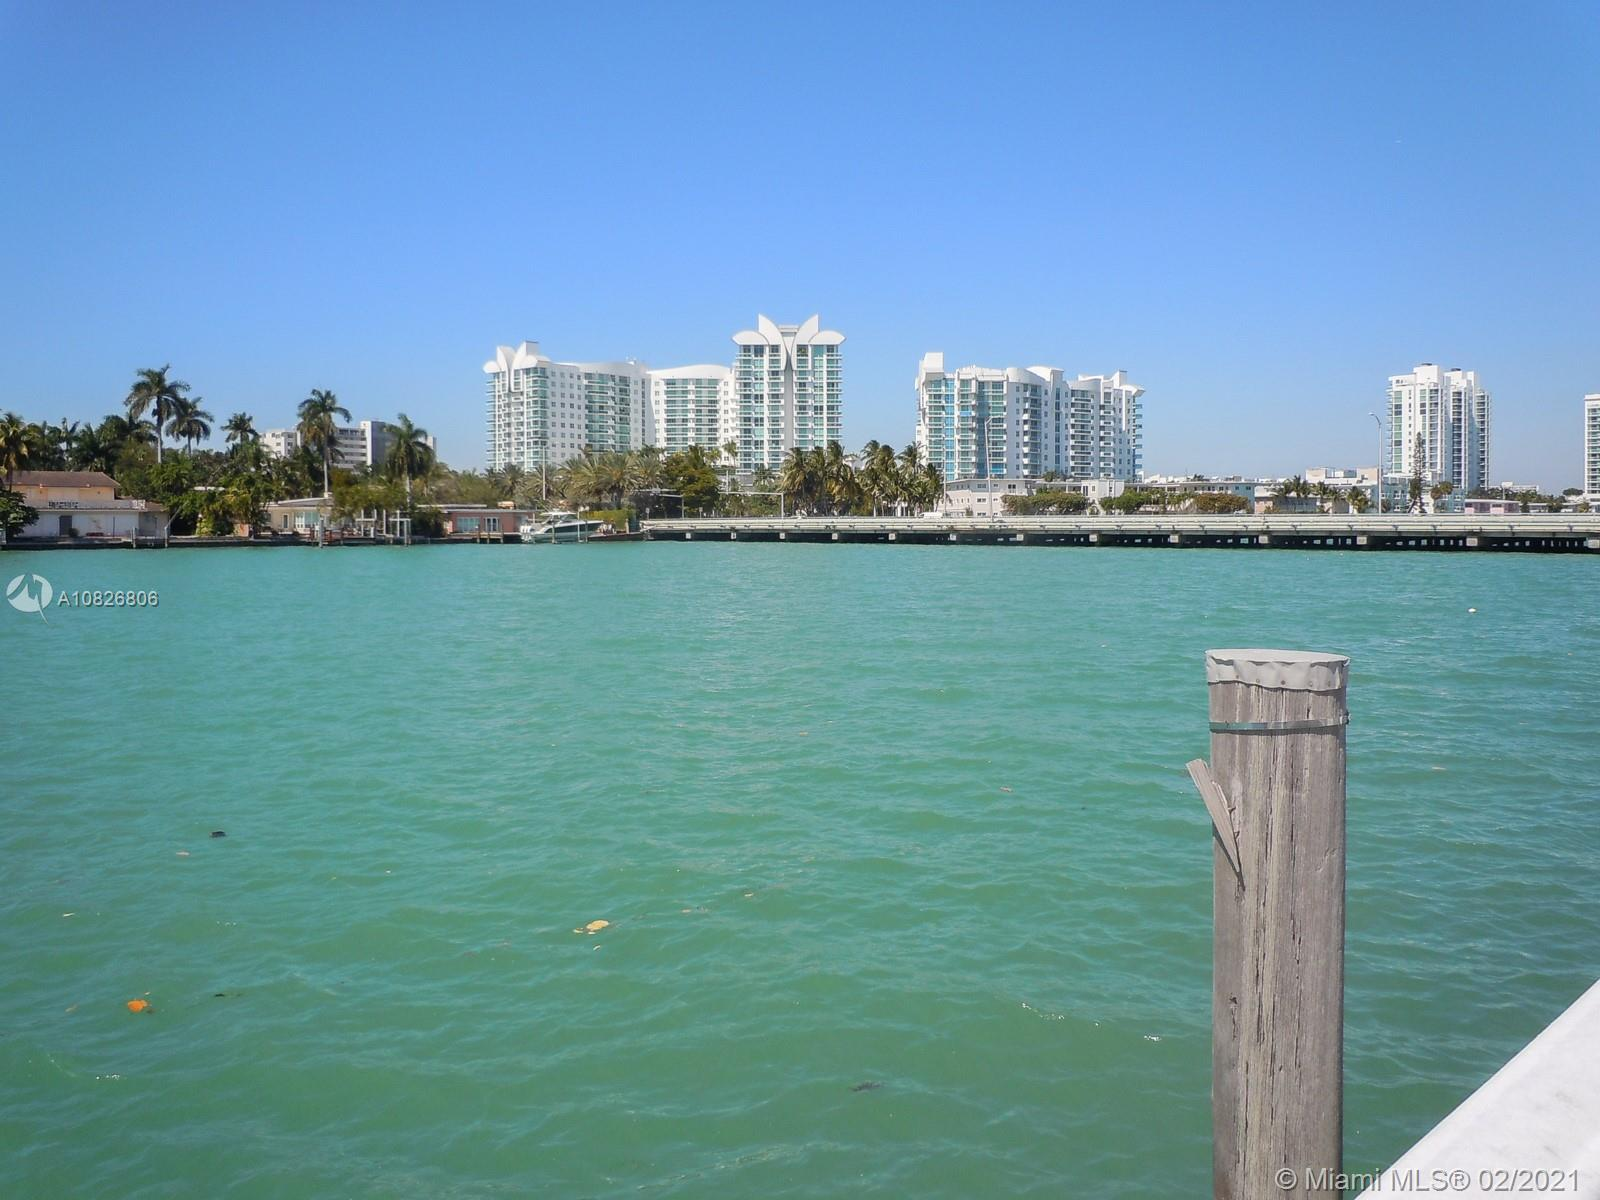 Island Place, 1455 N Treasure Dr Unit 7 D, North Bay Village, Florida 33141, image 1